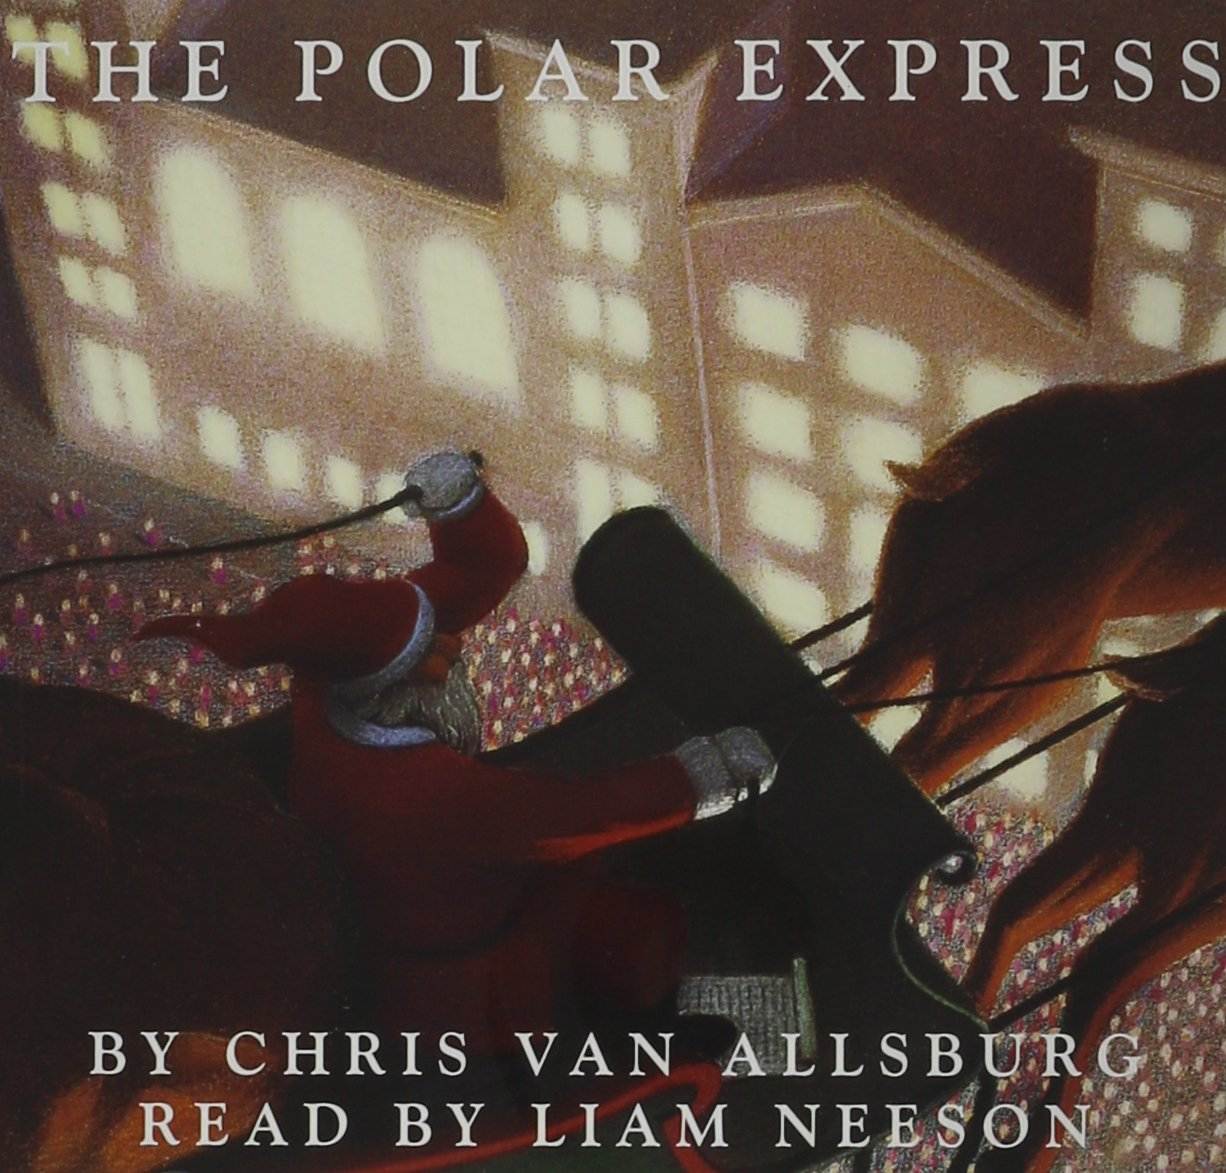 Express download free polar ebook the